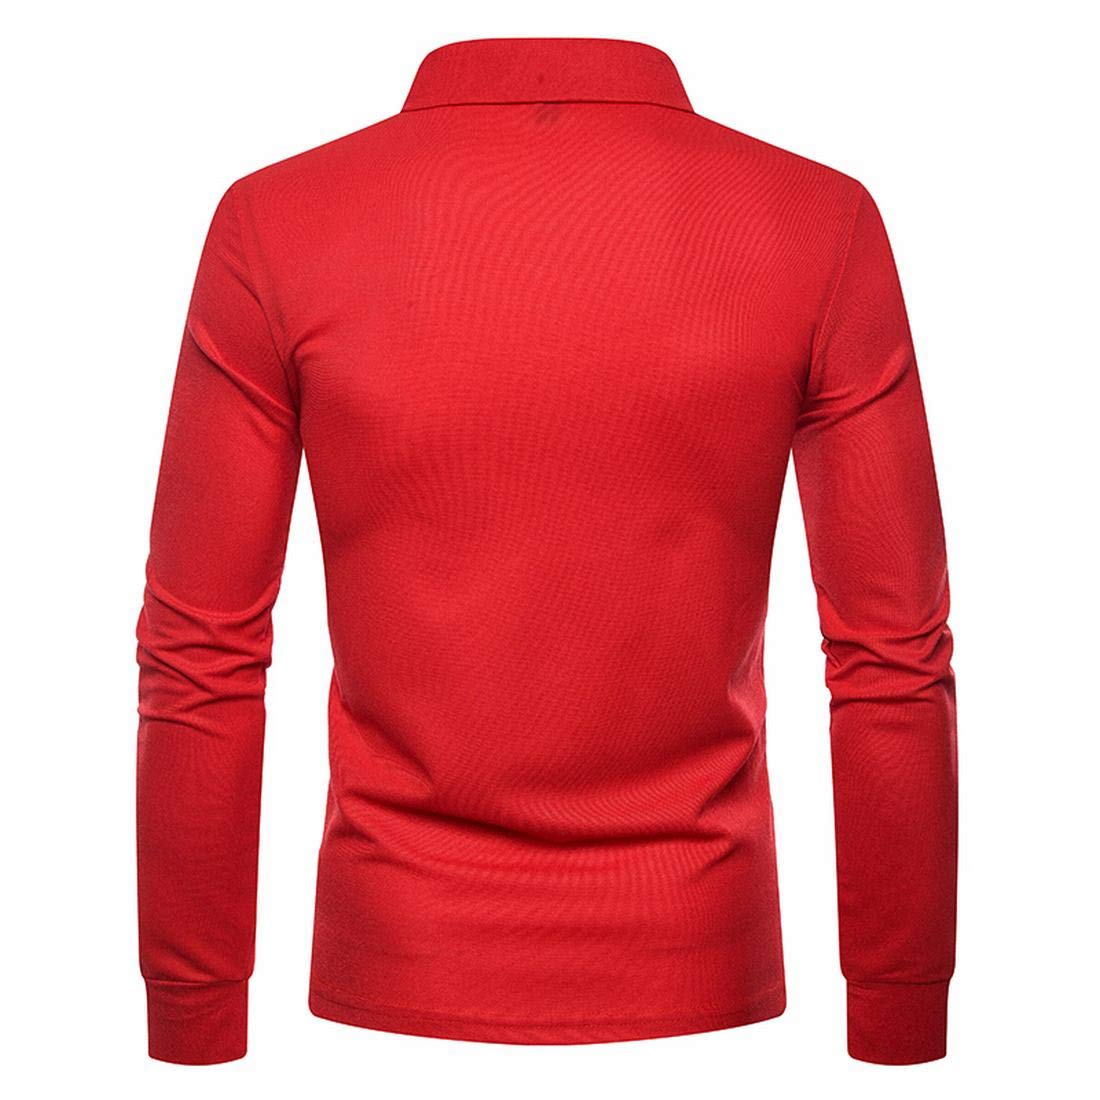 Jxg Men Long Sleeve Slim Fit Solid Color Tee Plus Size Golf Polo